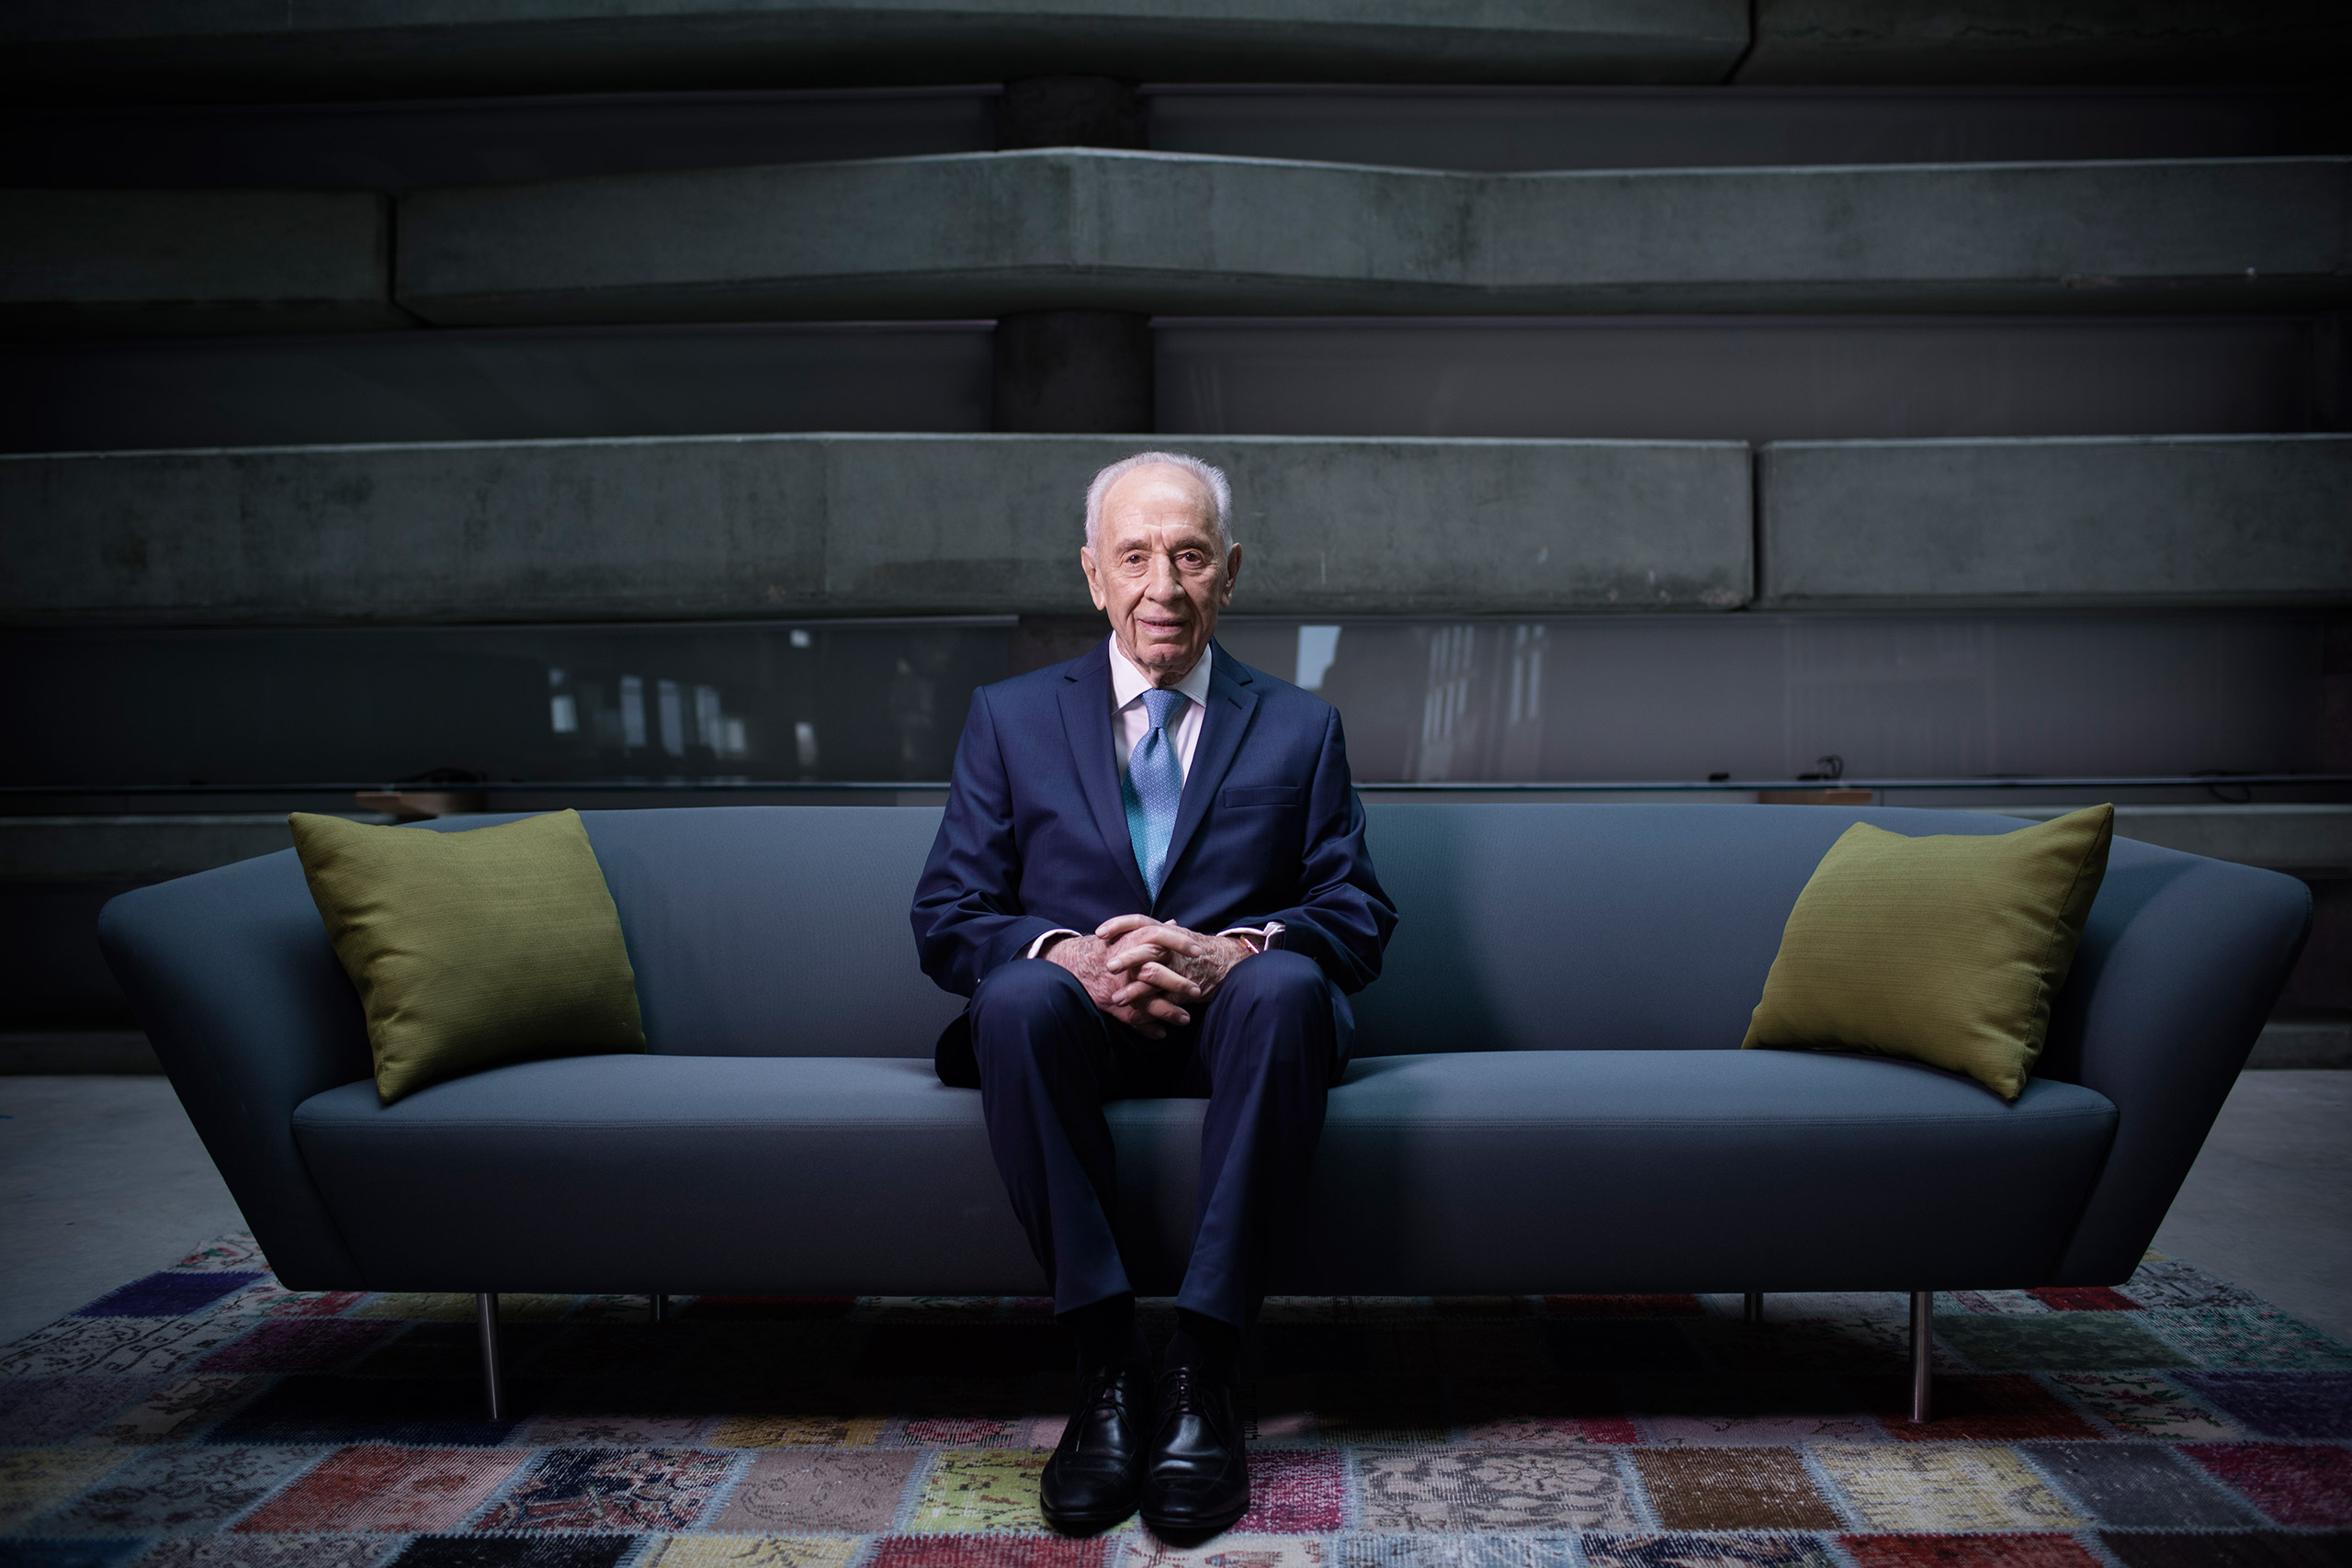 Peres sits for a portrait at the Peres Center for Peace in Tel Aviv-Jaffa, Israel, Feb. 8, 2016.